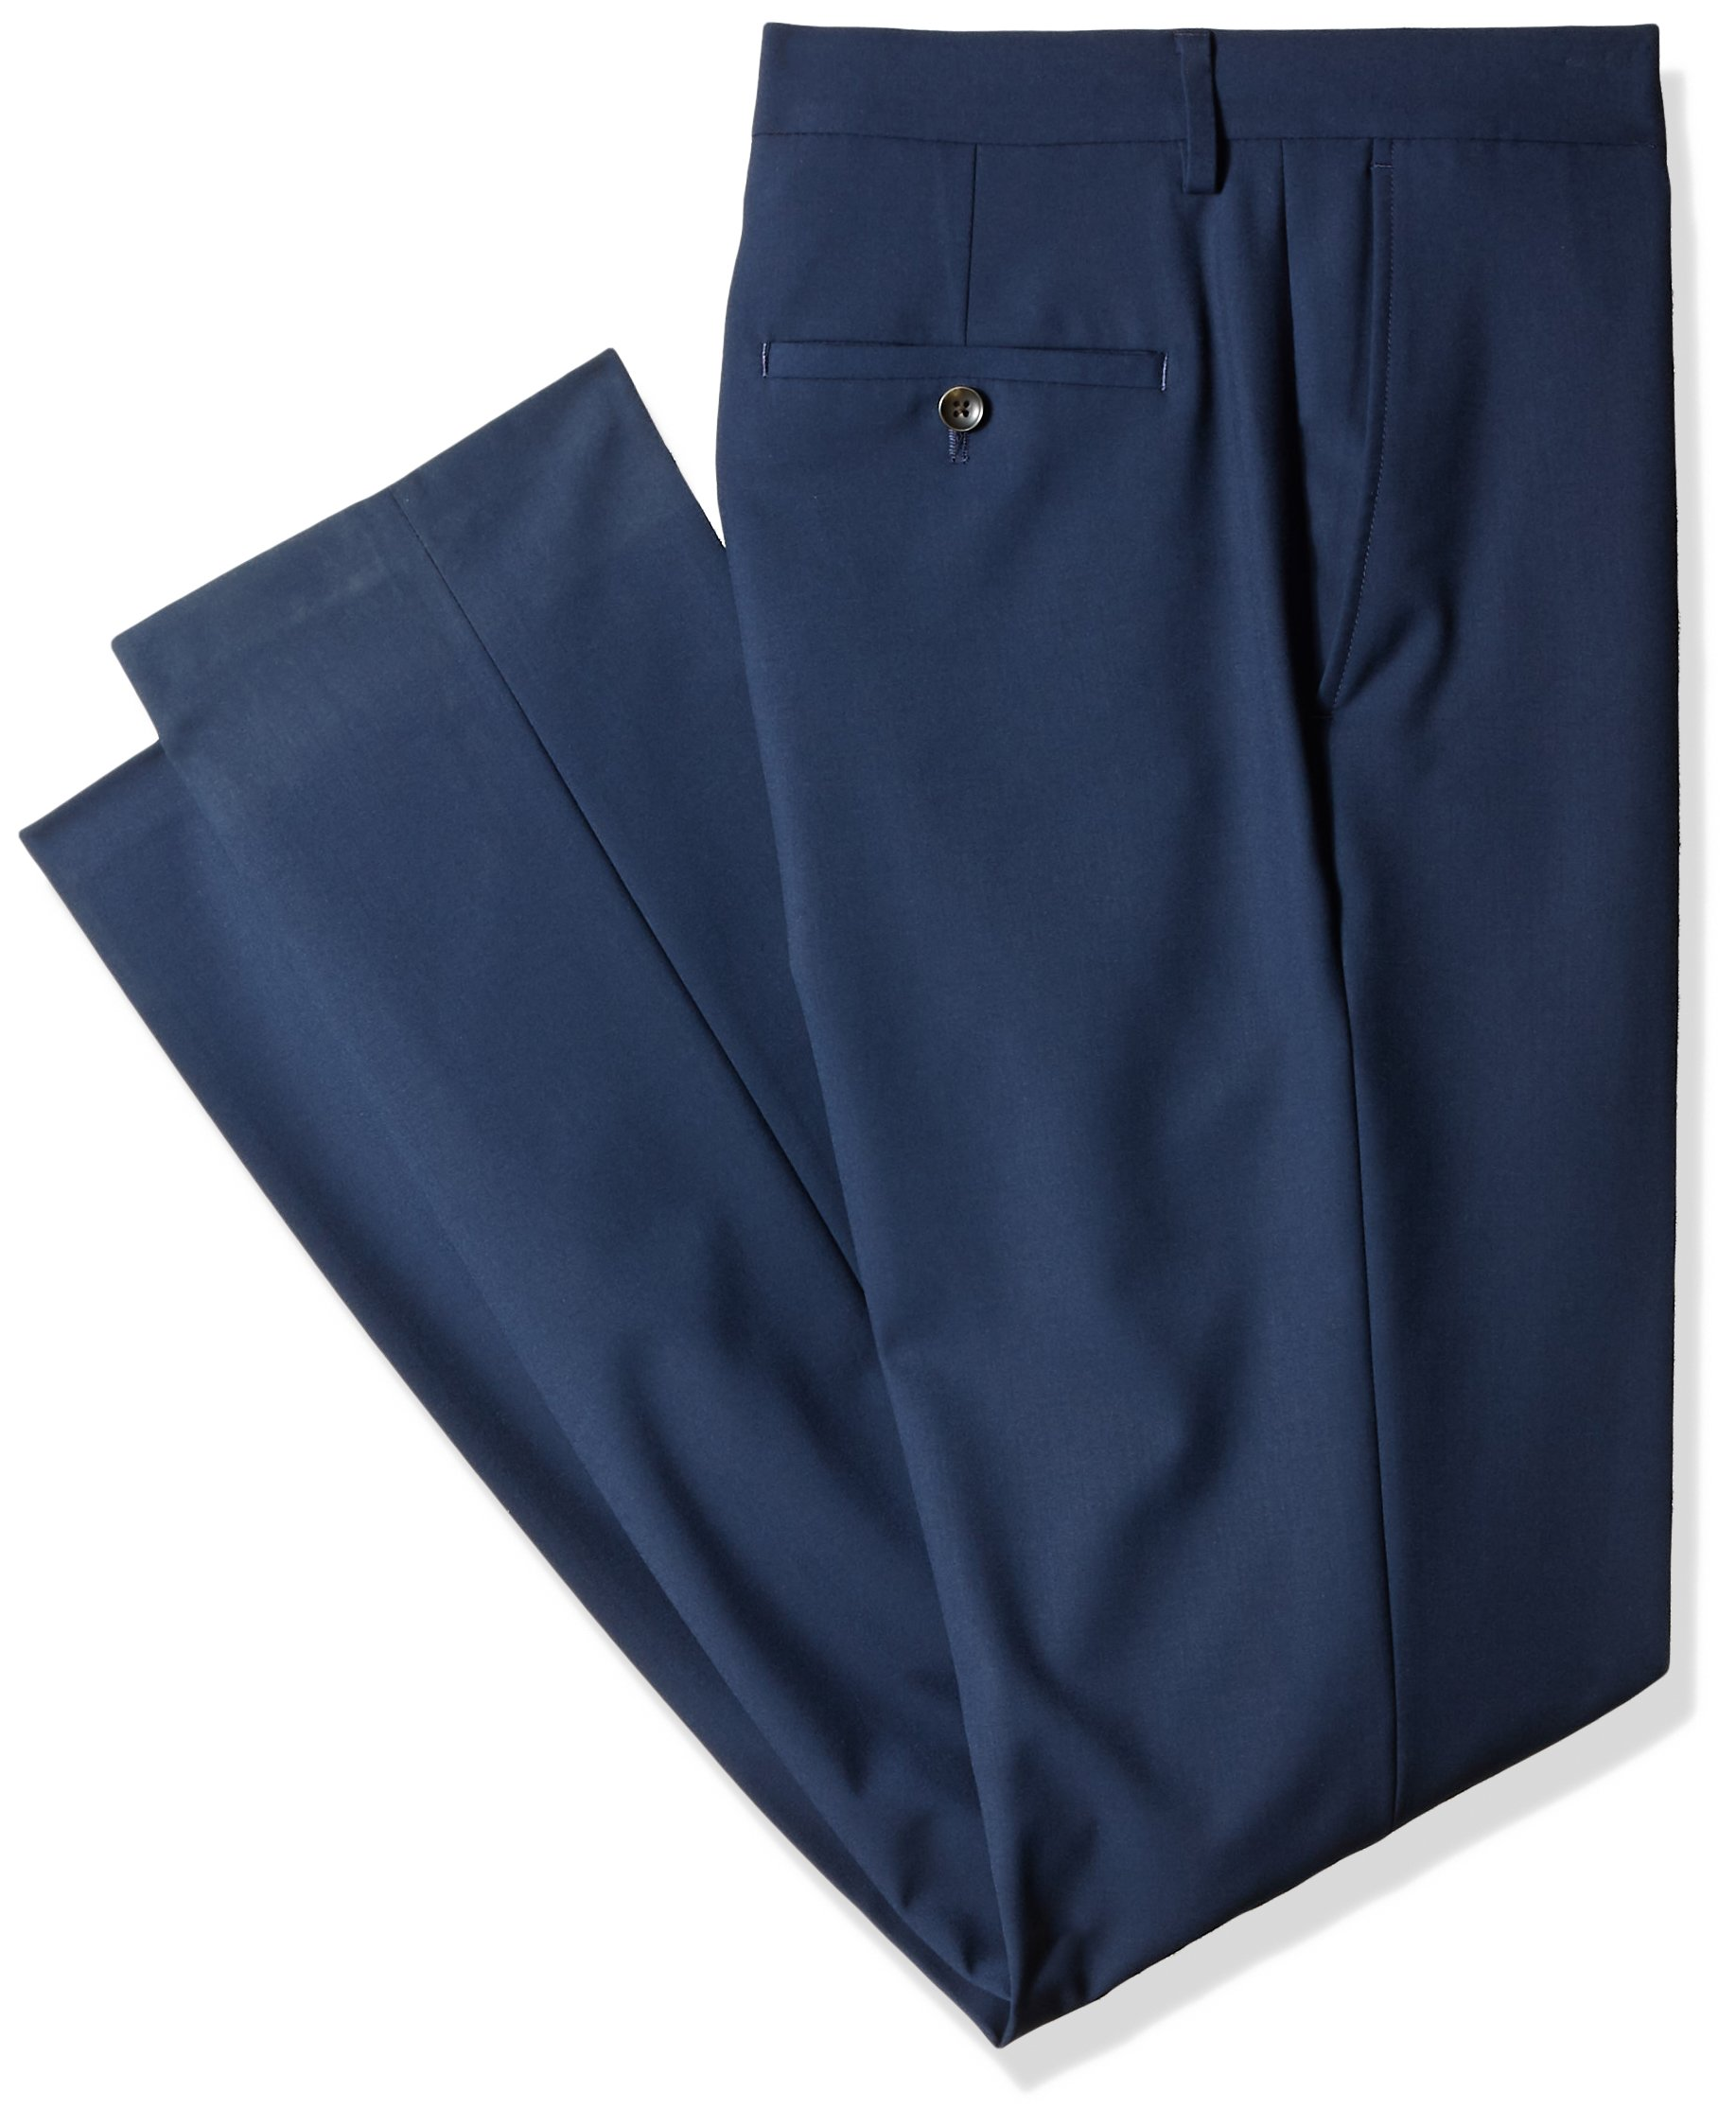 Haggar Men's J.M. 4-Way Stretch Solid Flat Front Slim Fit Suit Separate Pant, Blue, 38Wx36L by Haggar